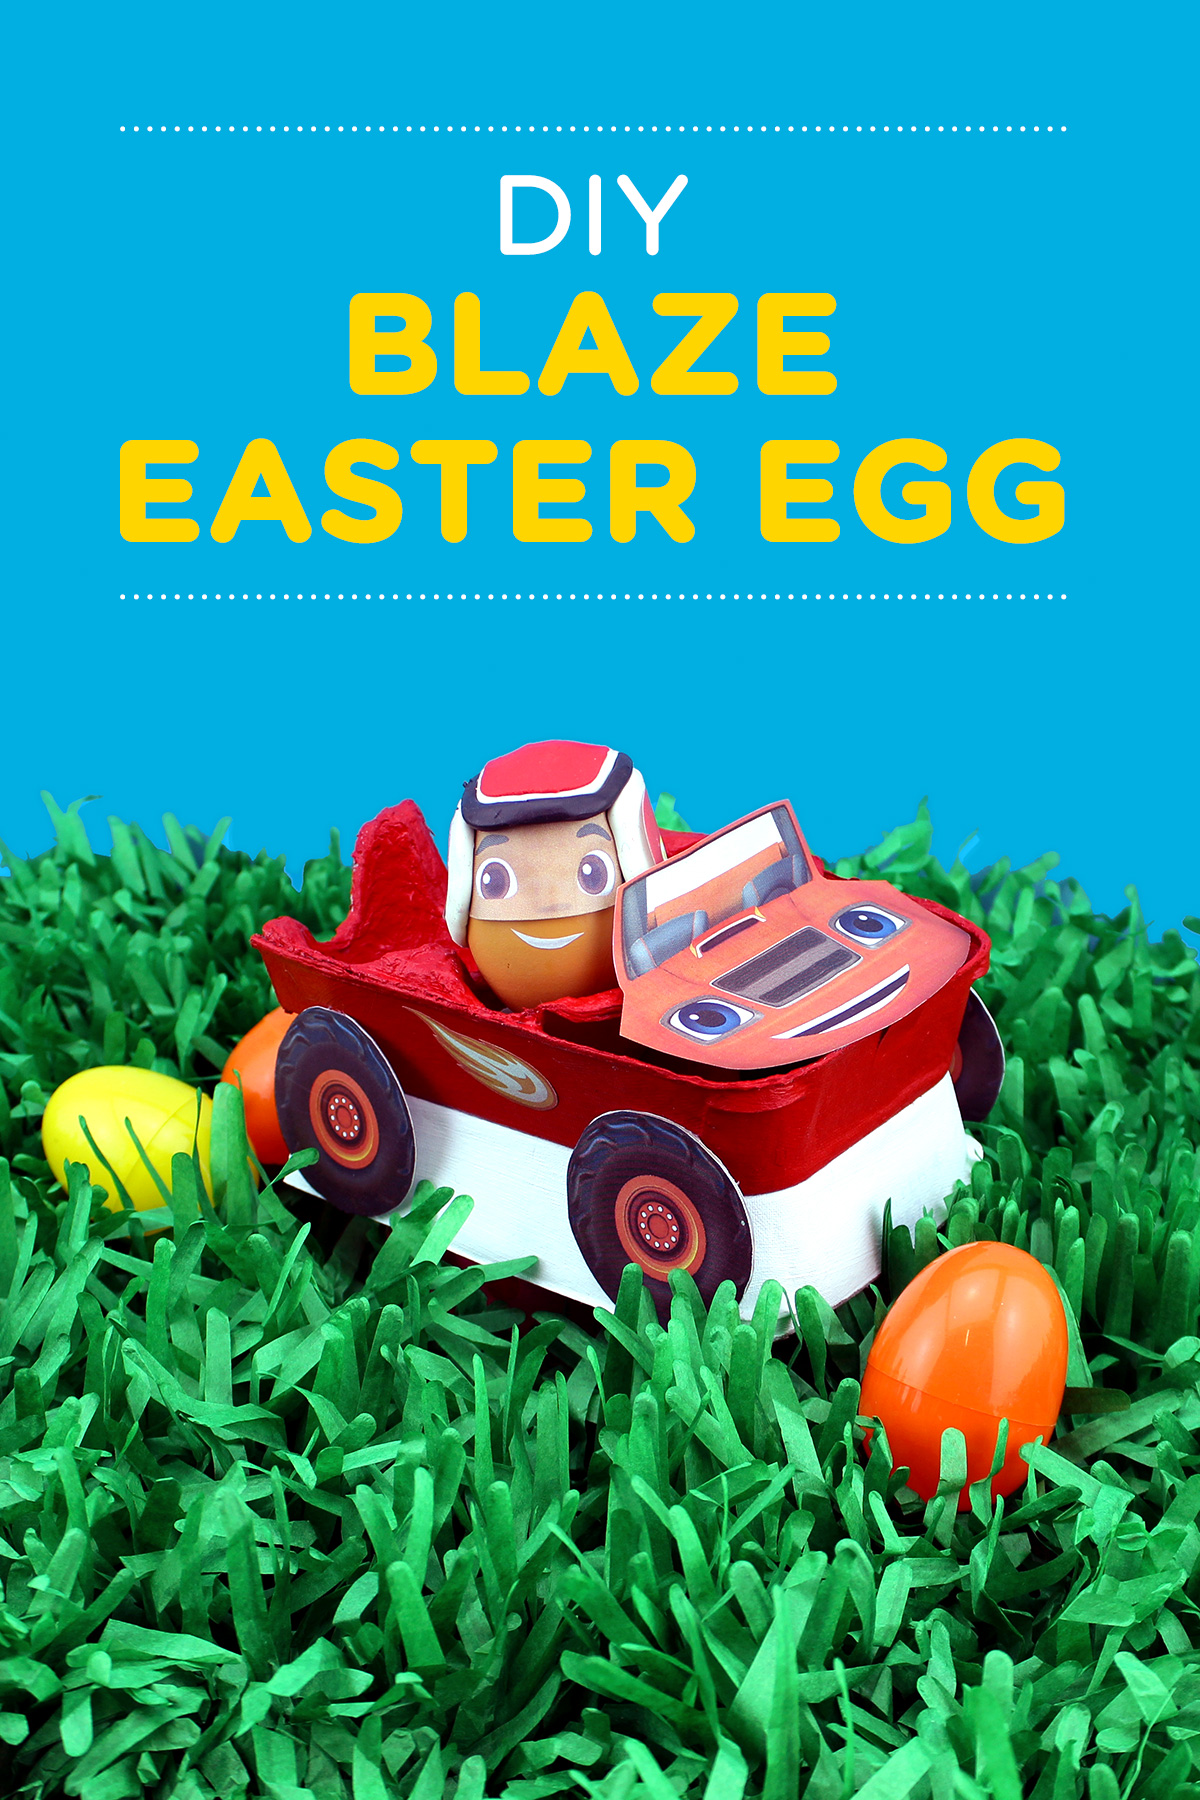 DIY Blaze Easter Egg Craft